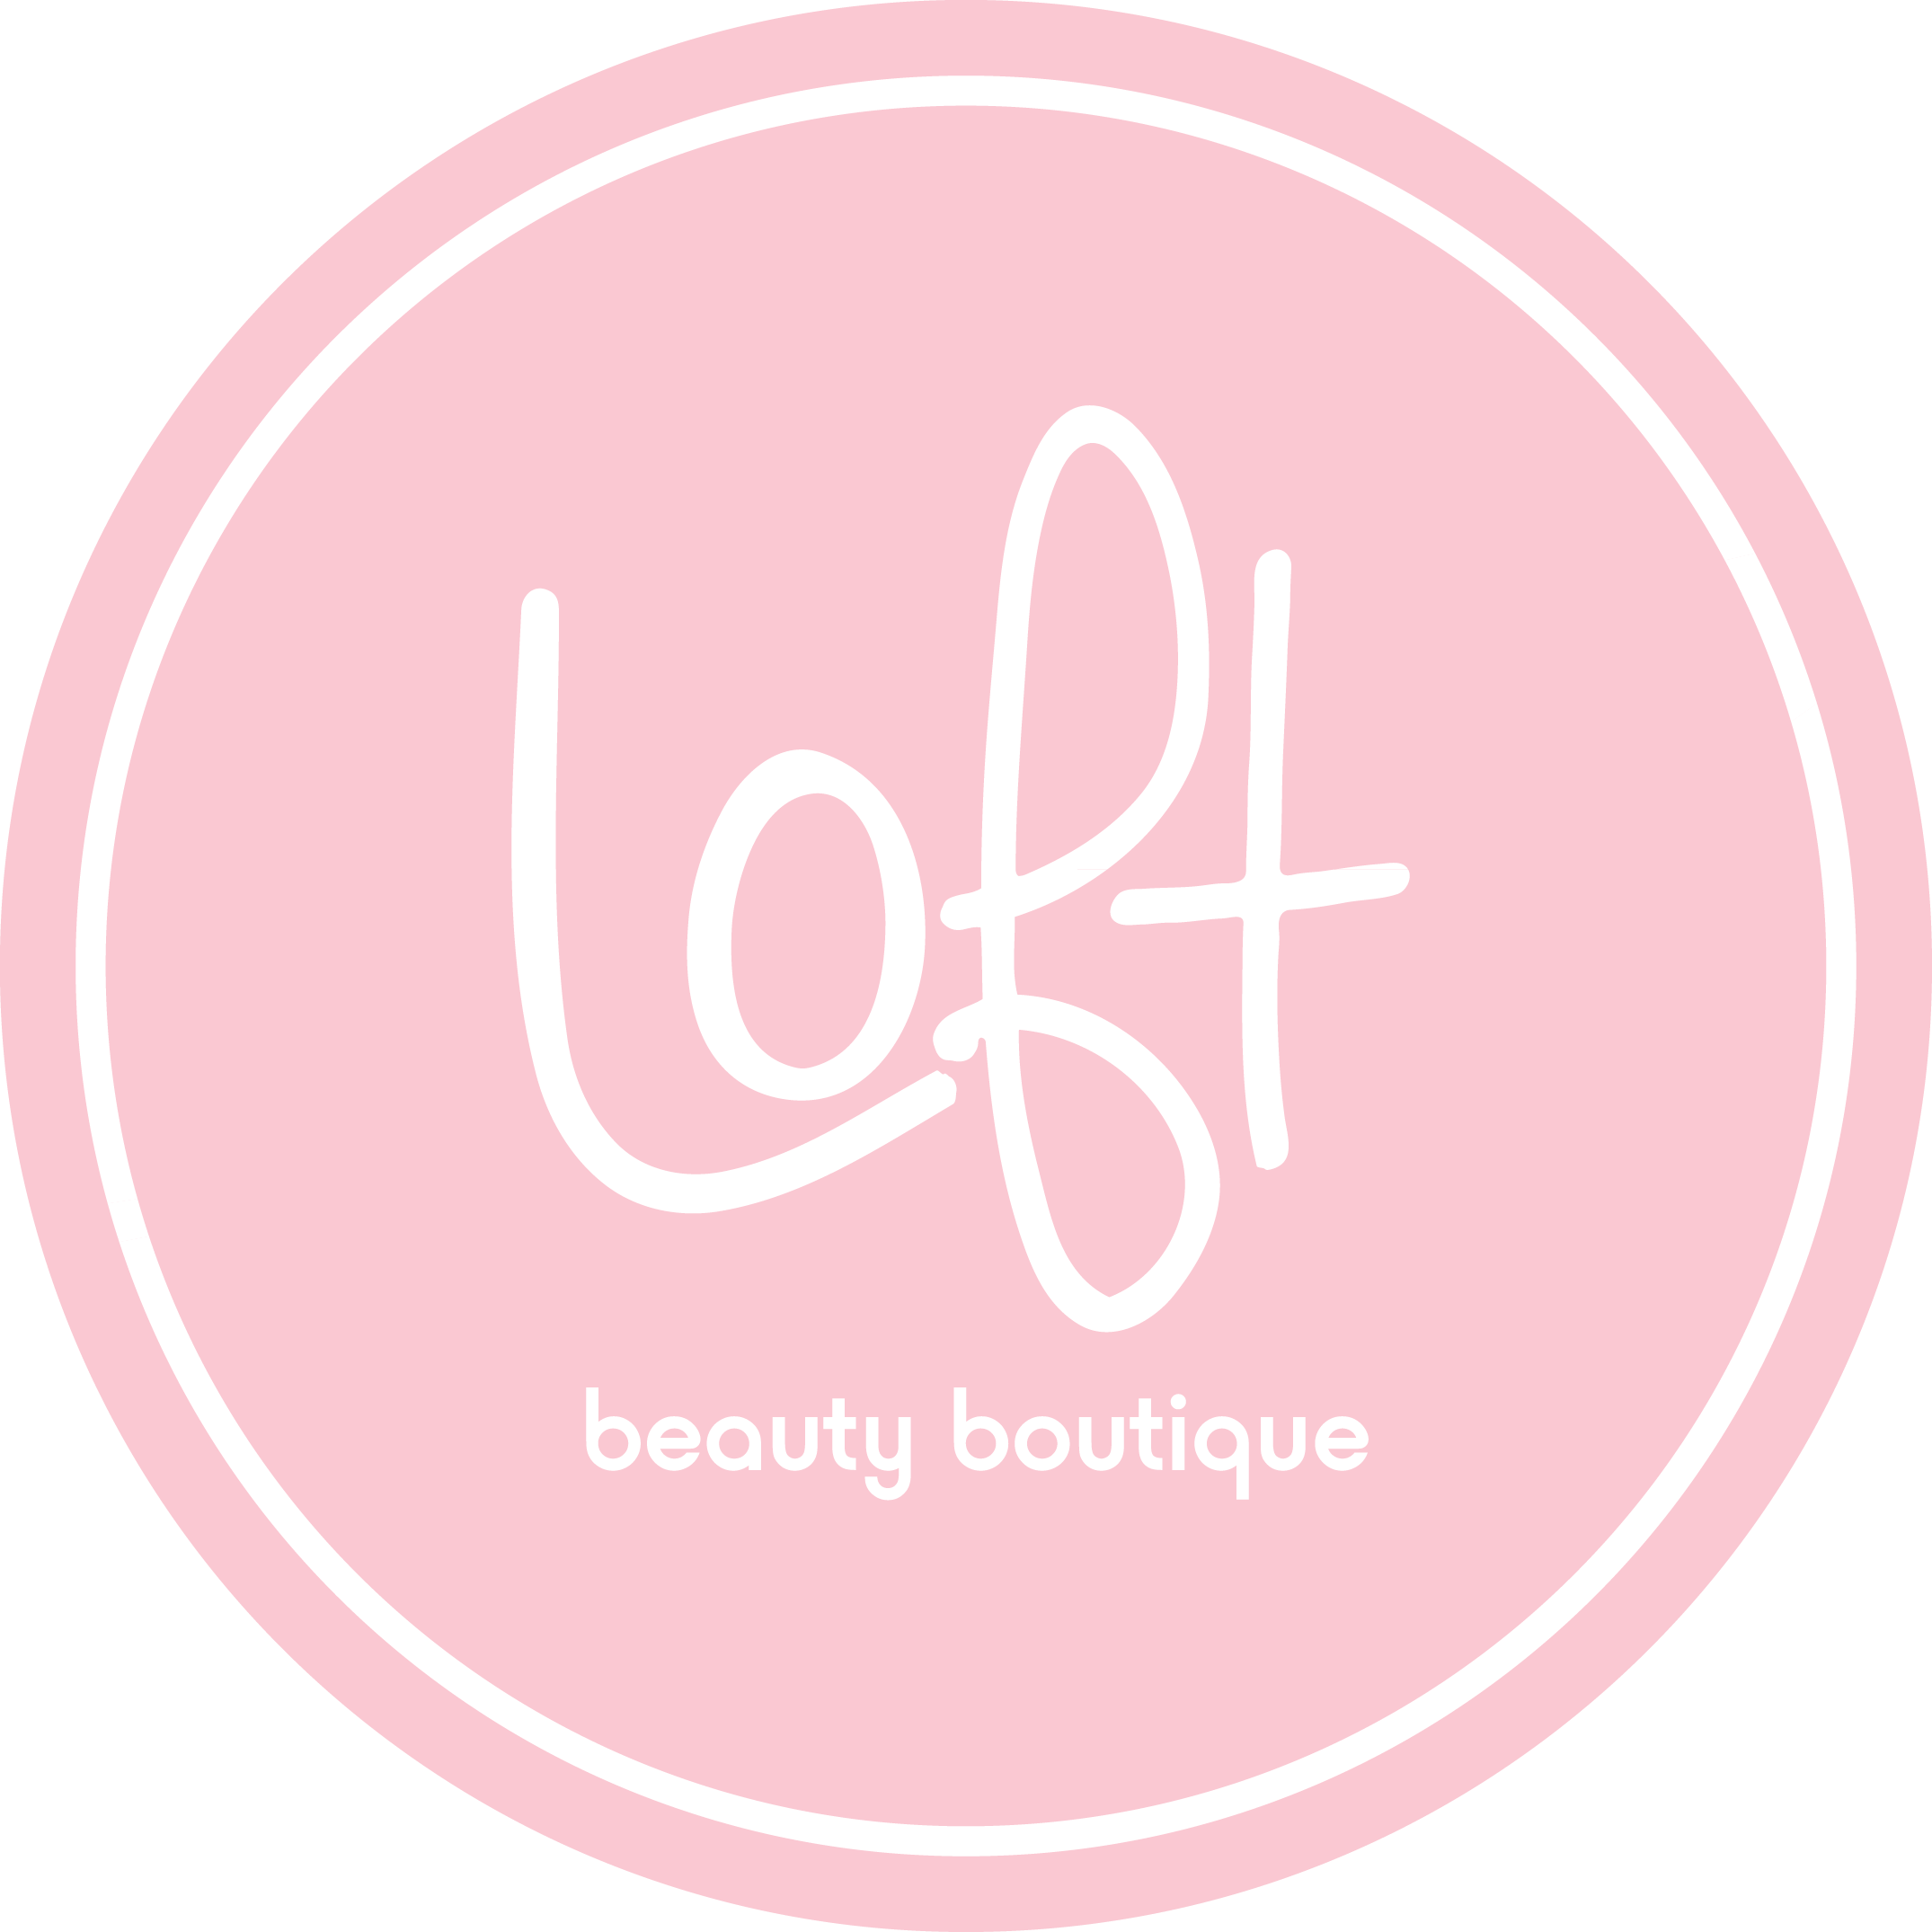 Loft Beauty Boutique